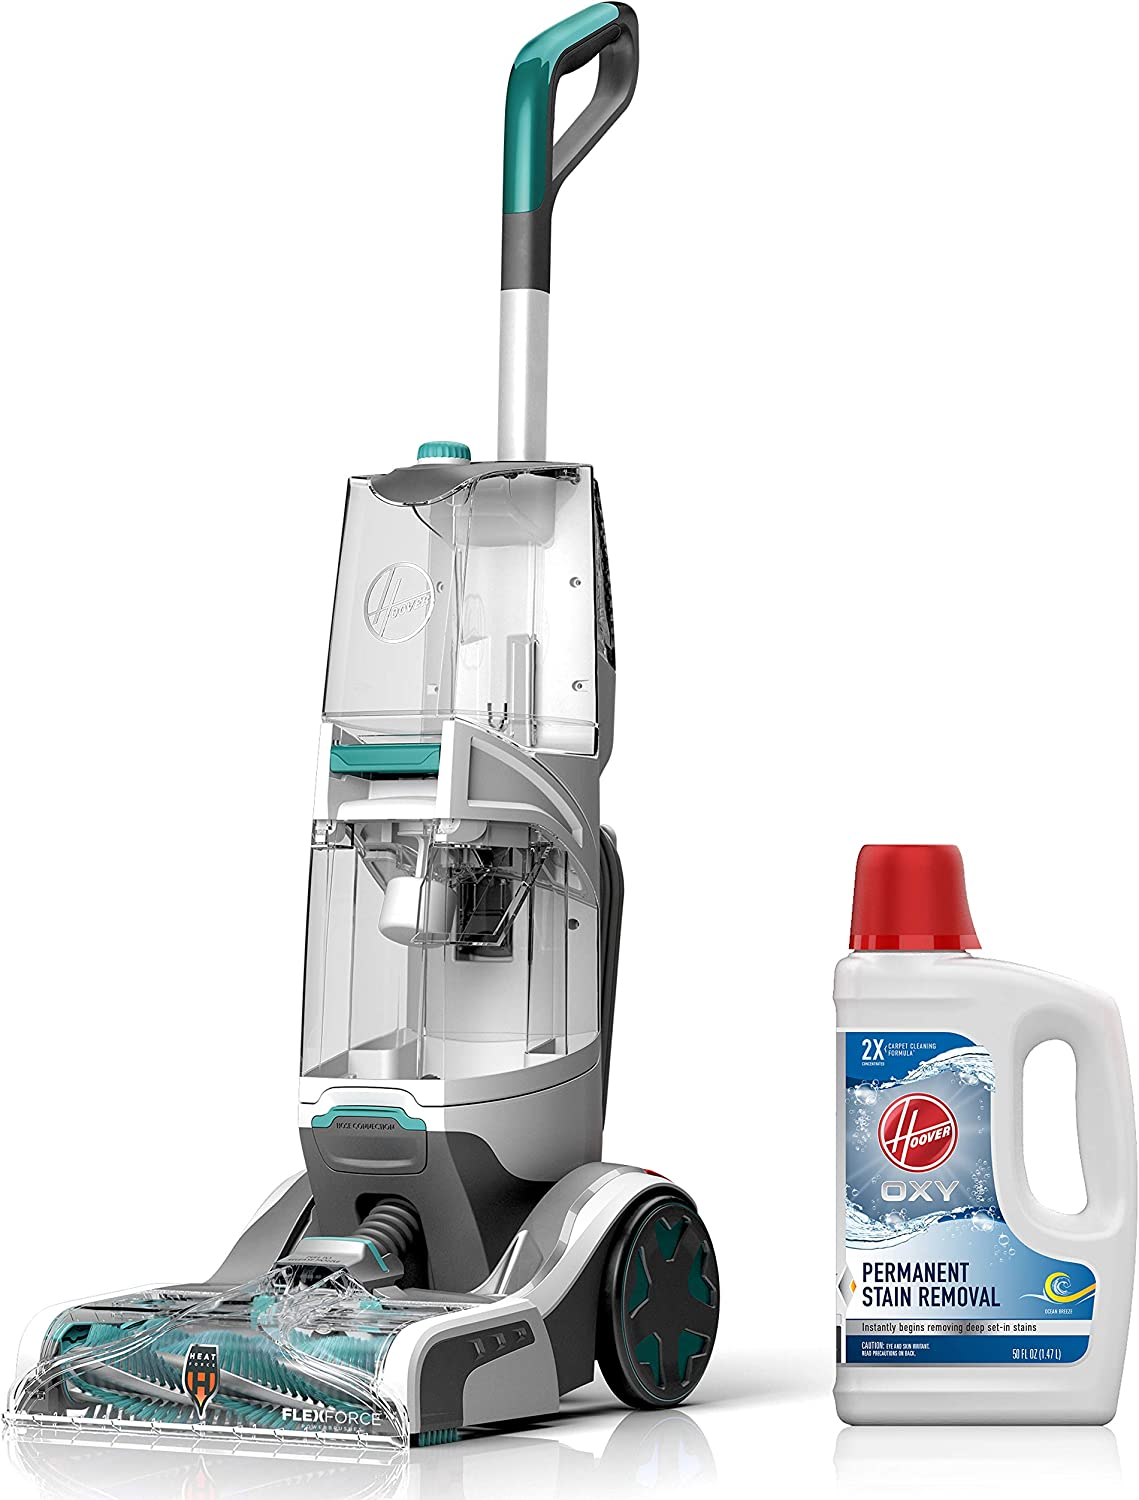 Hoover Smartwash Automatic Carpet Cleaner with Oxy Carpet Cleaning Solution (50 oz), FH52000, AH30950